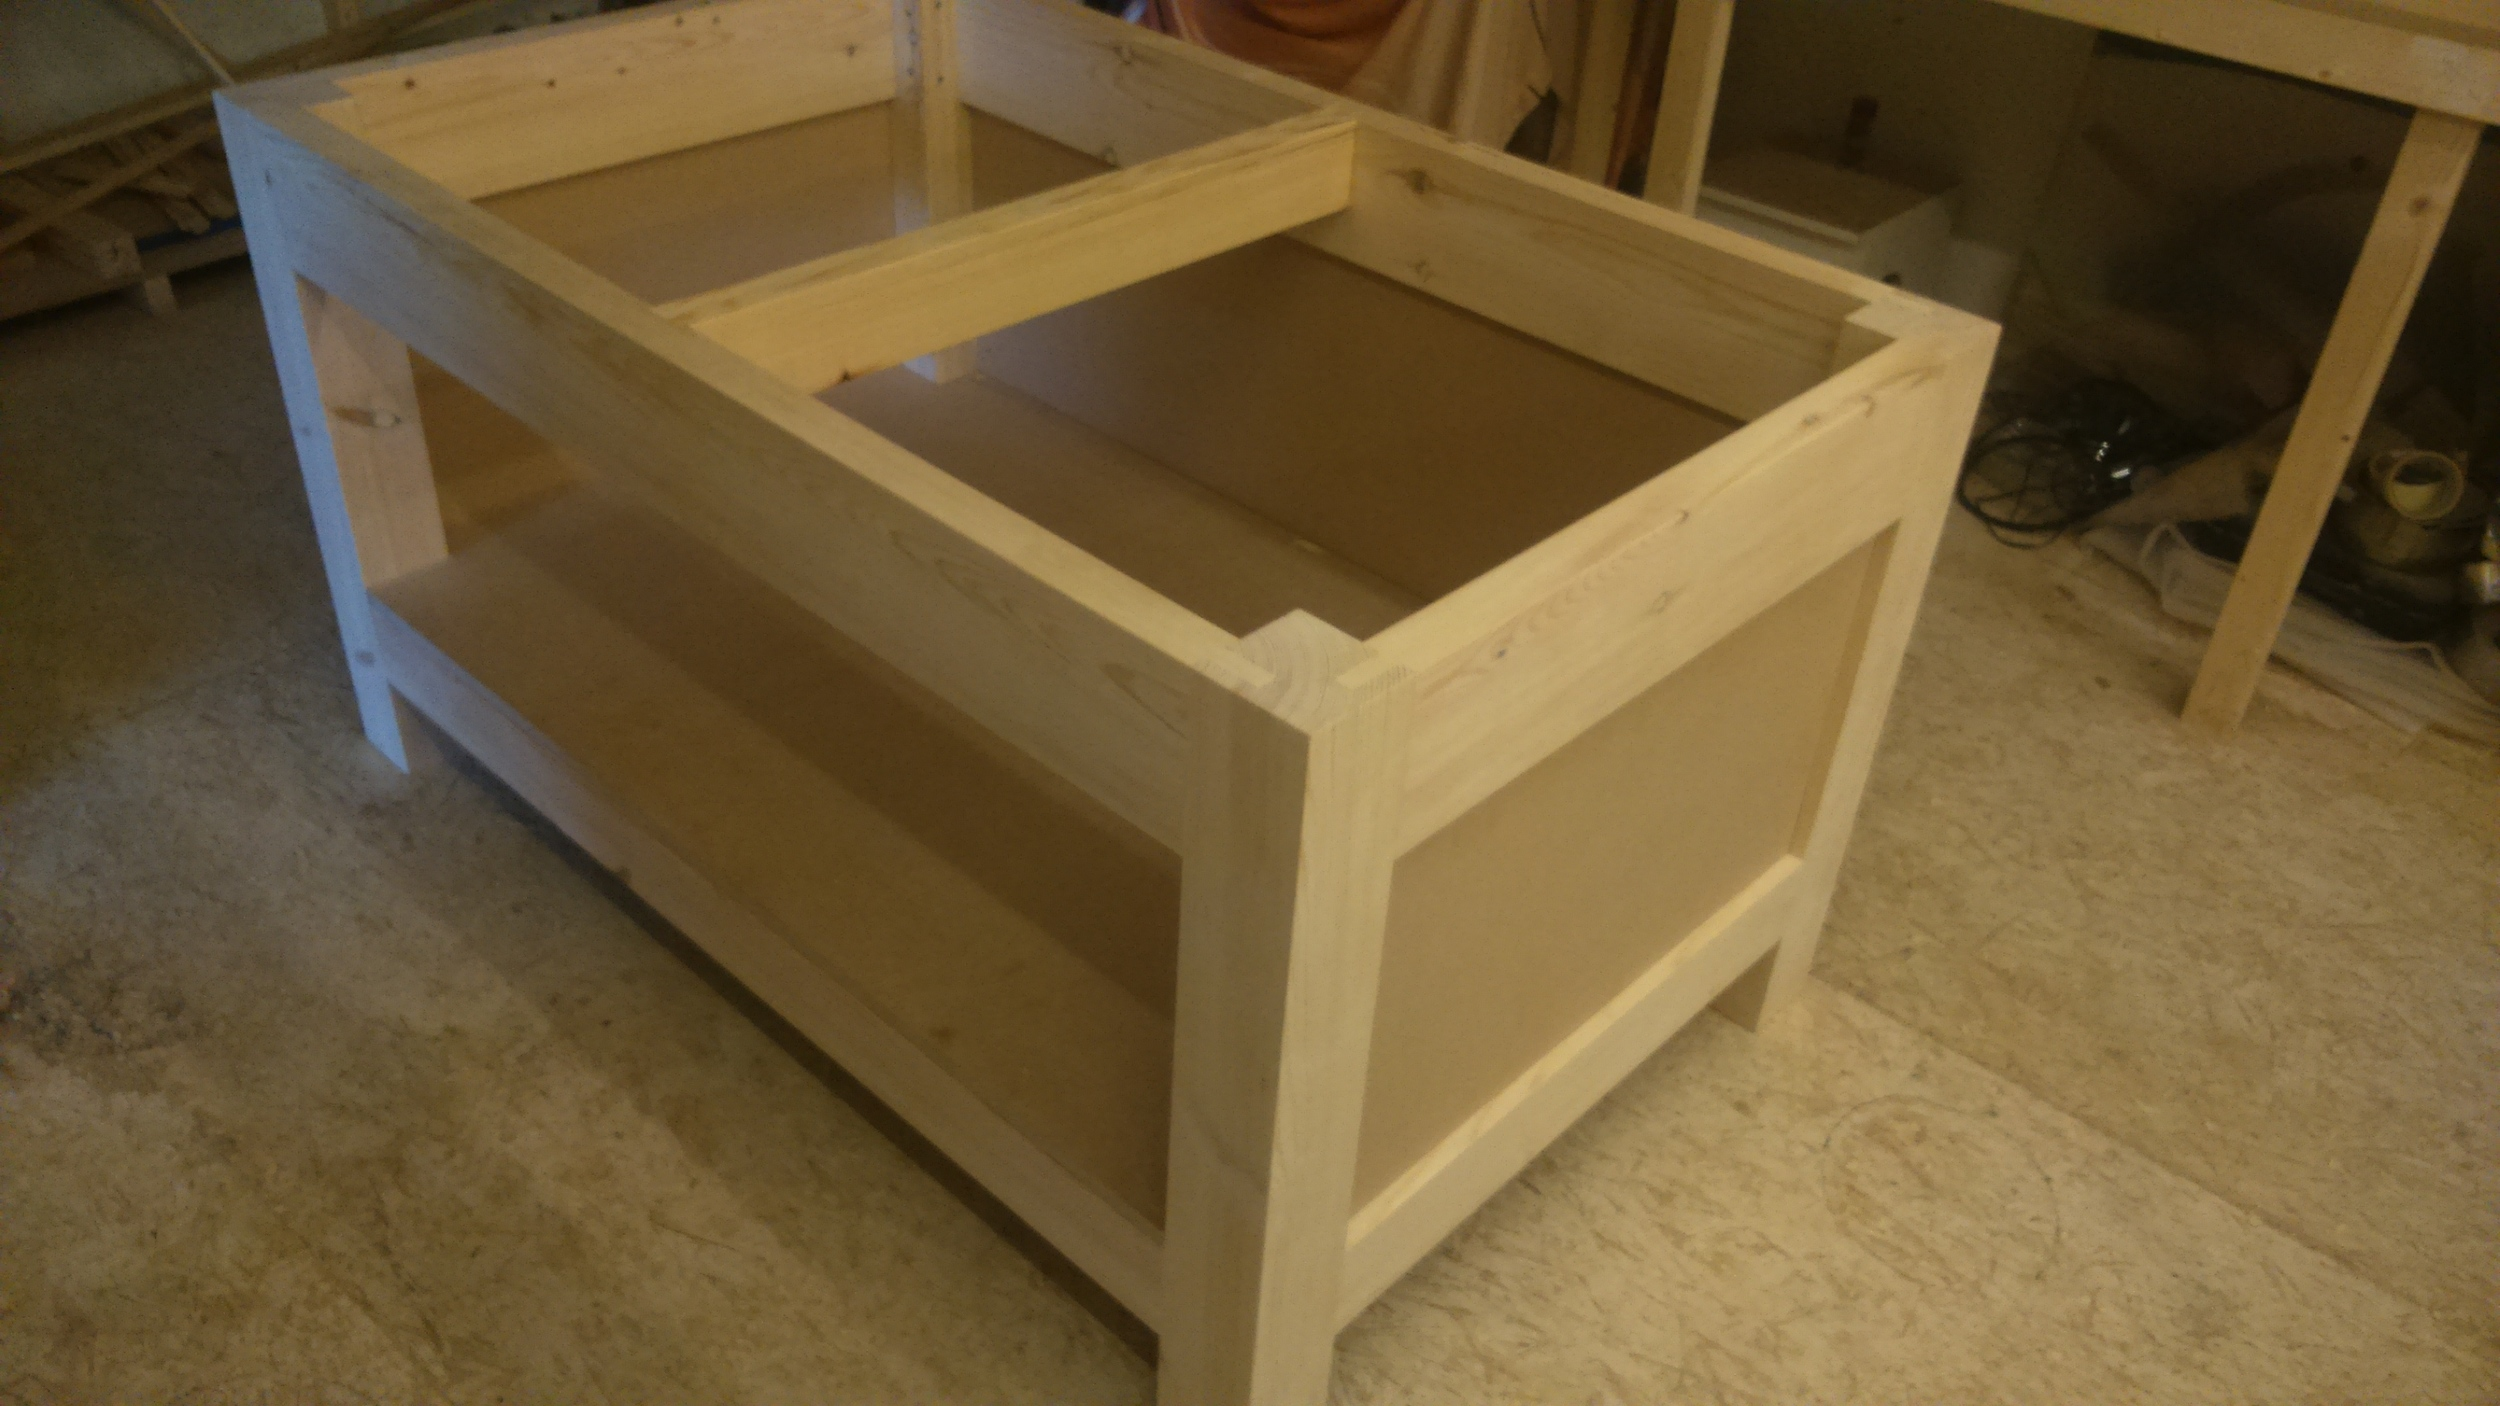 Workbench for a fudge shop, to have a marble top